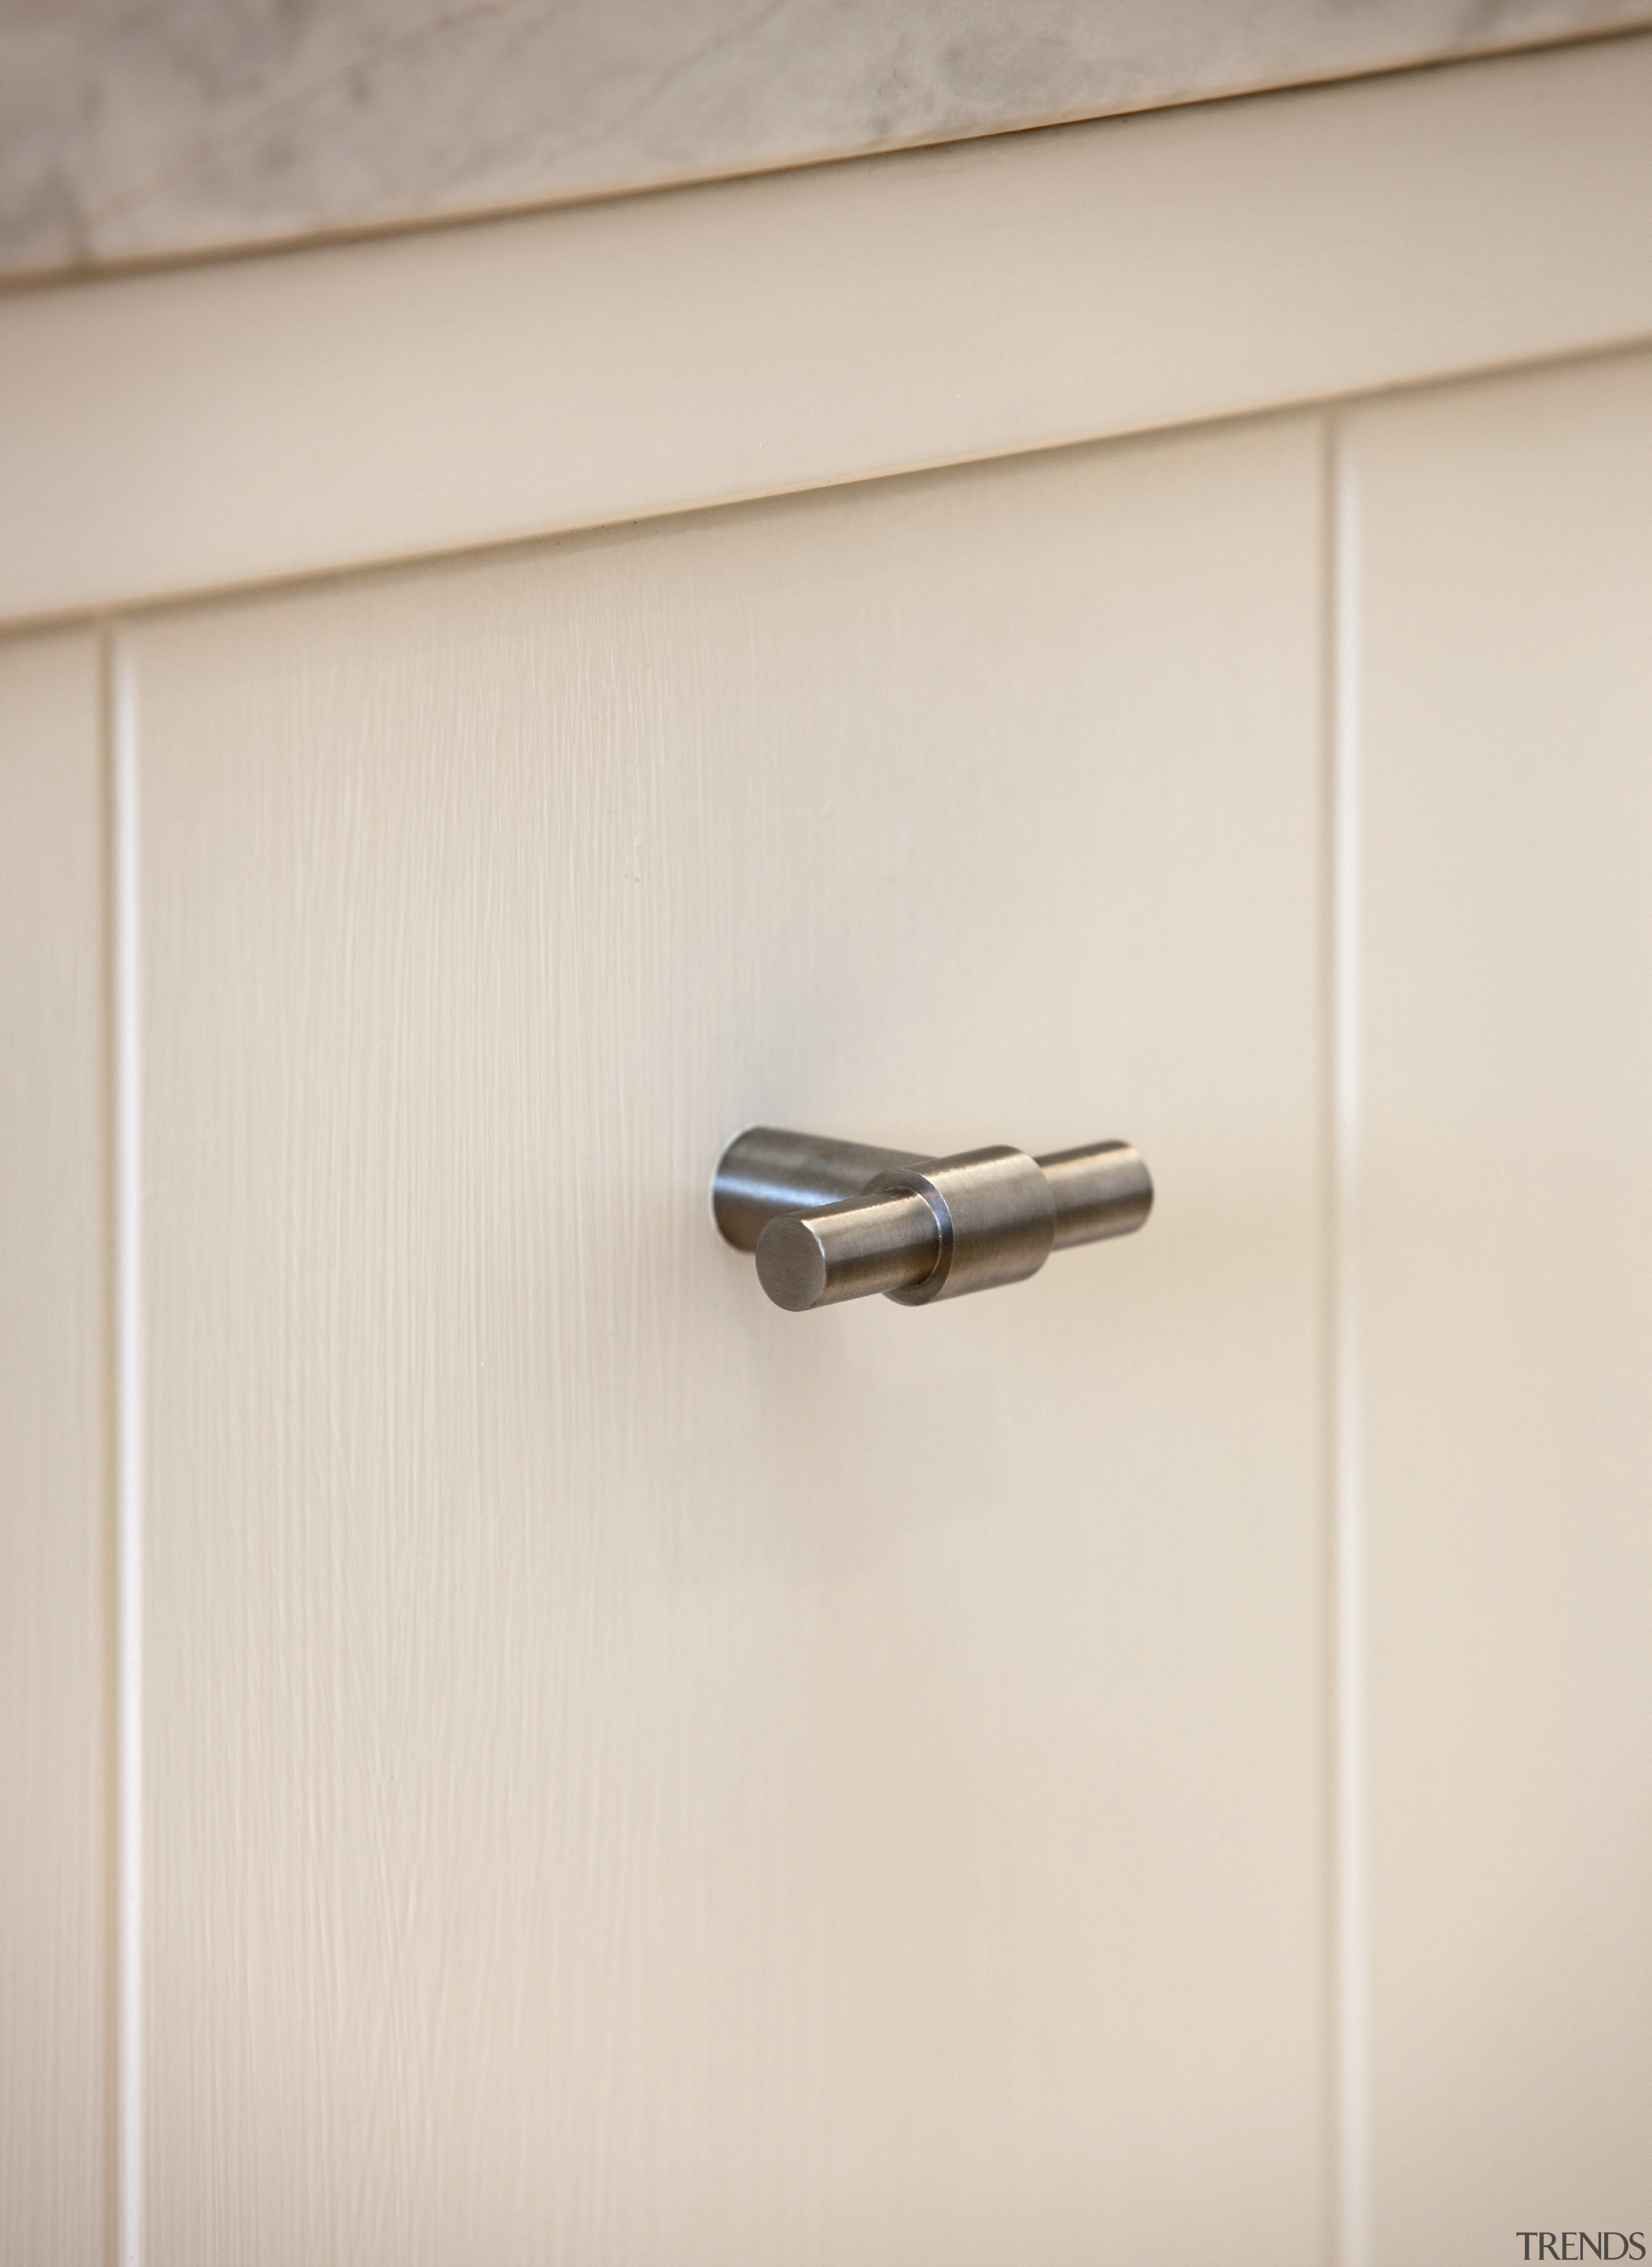 PB14 - Solid Cabinet Knob. Available in Satin door handle, product design, white